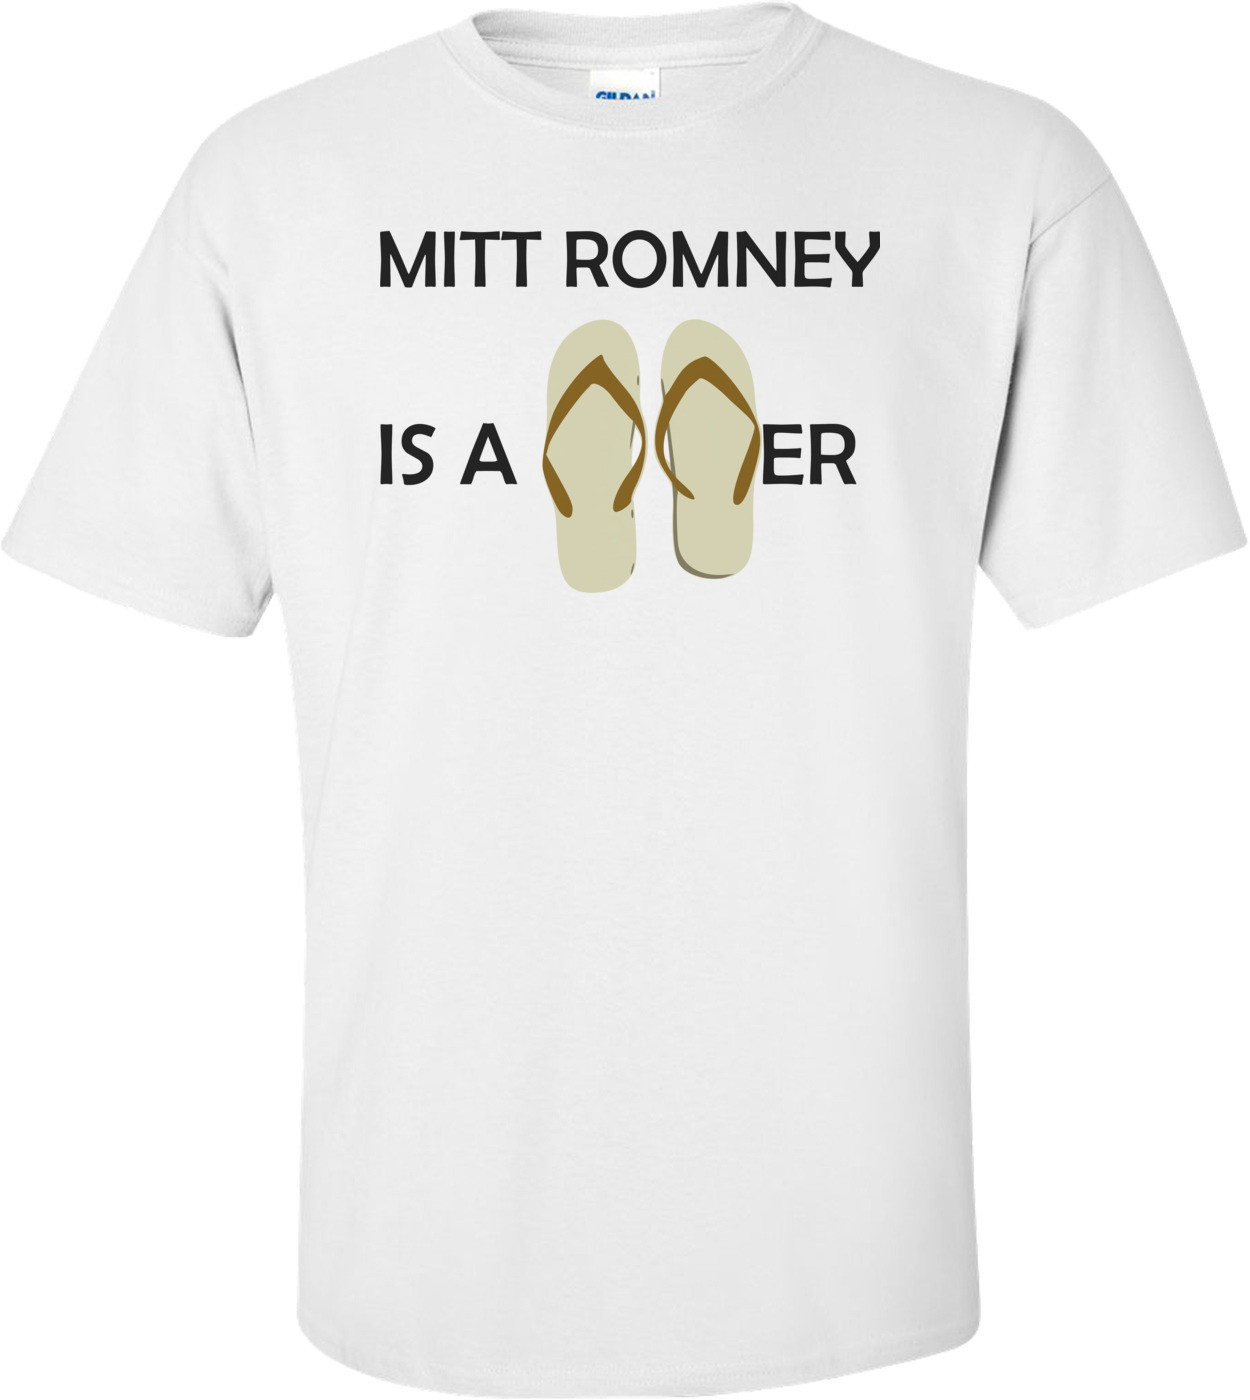 Mitt Romney Is A Flip Flopper - Anti Mitt Romney Shirt